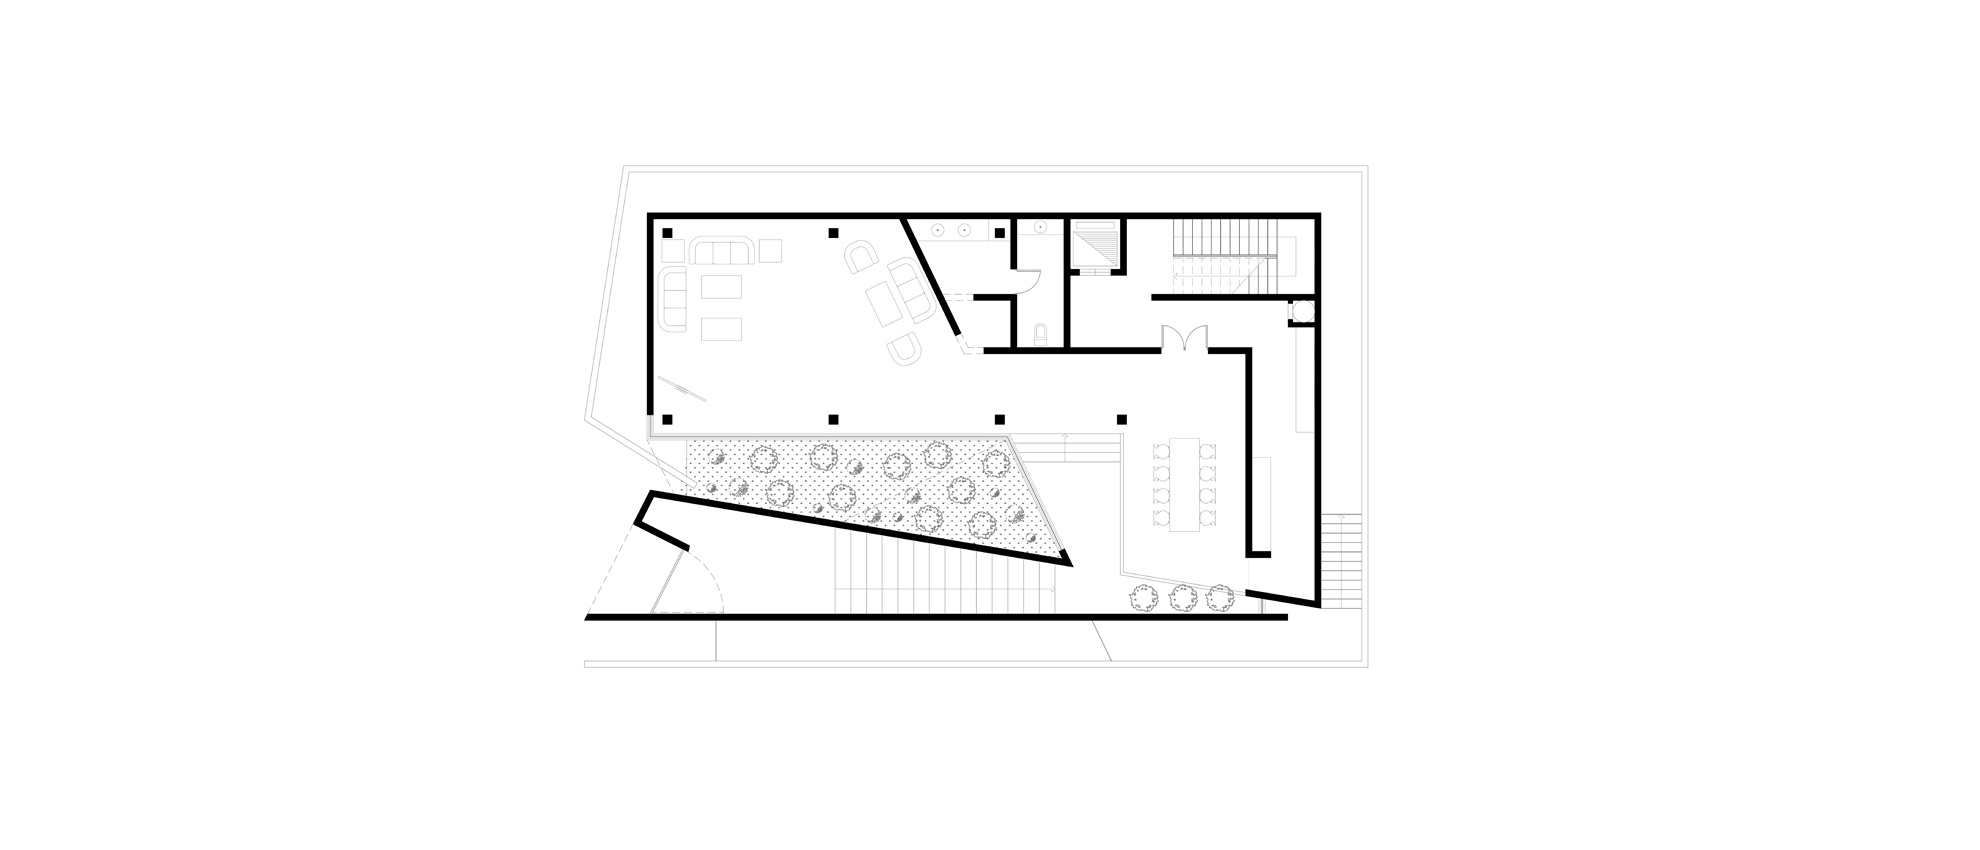 1First Floor Plan